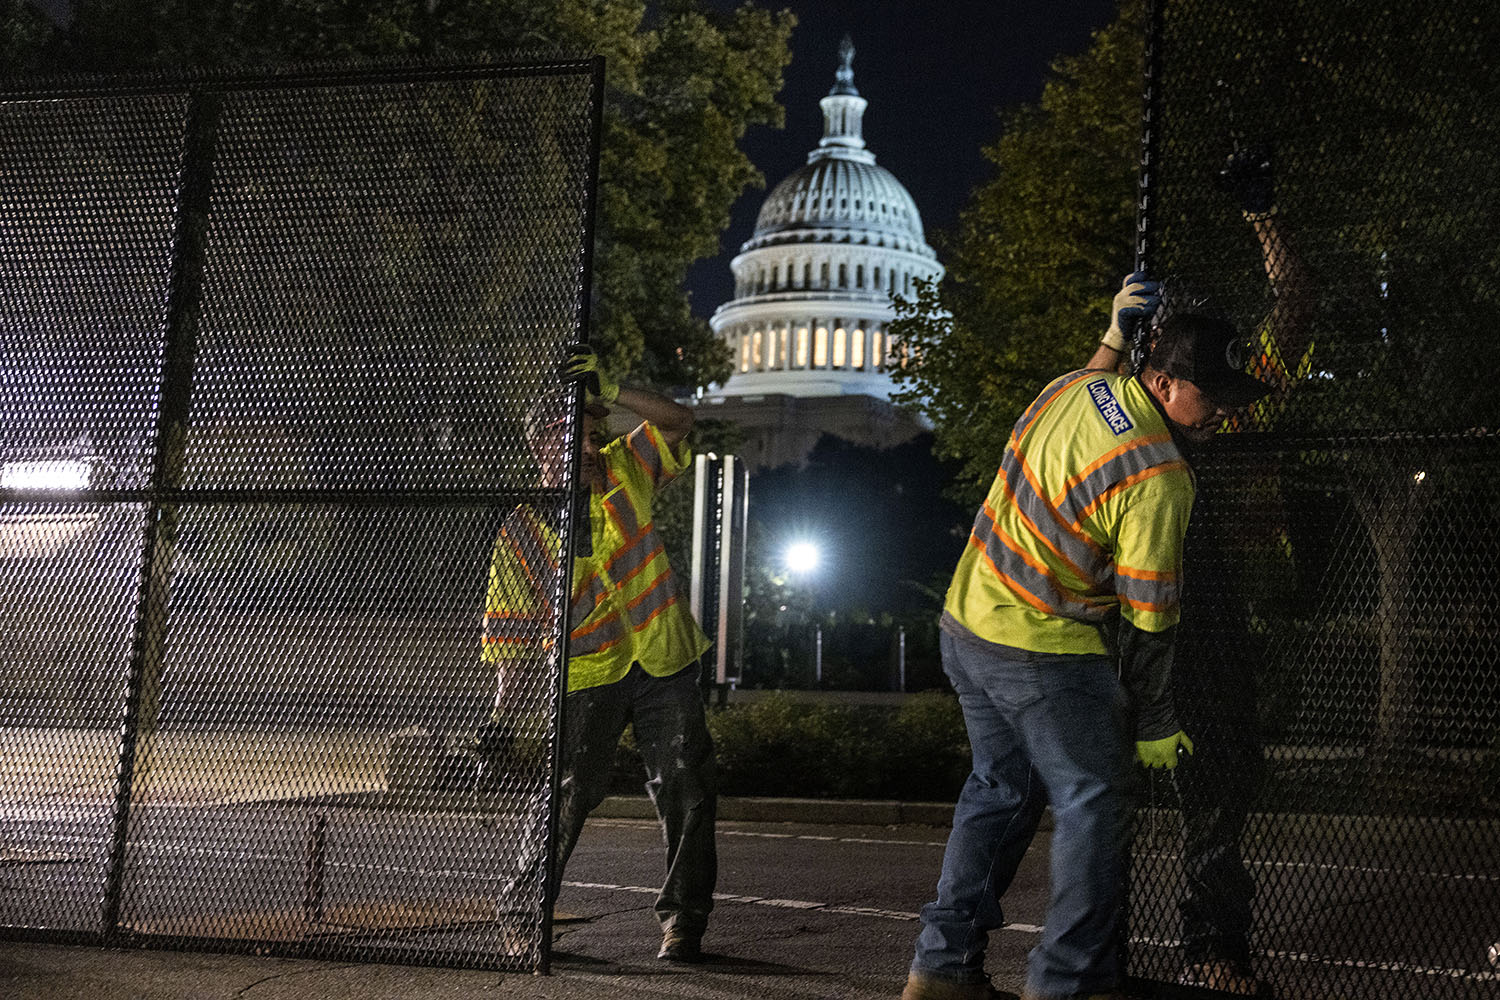 Workers install security fencing around the U.S. Capitol in preparation for the Justice for J6 rally, a far-right protest in support of those jailed in connection to the Jan. 6 attack on the Capitol, in Washington on Sept. 15. Kevin Dietsch/Getty Images